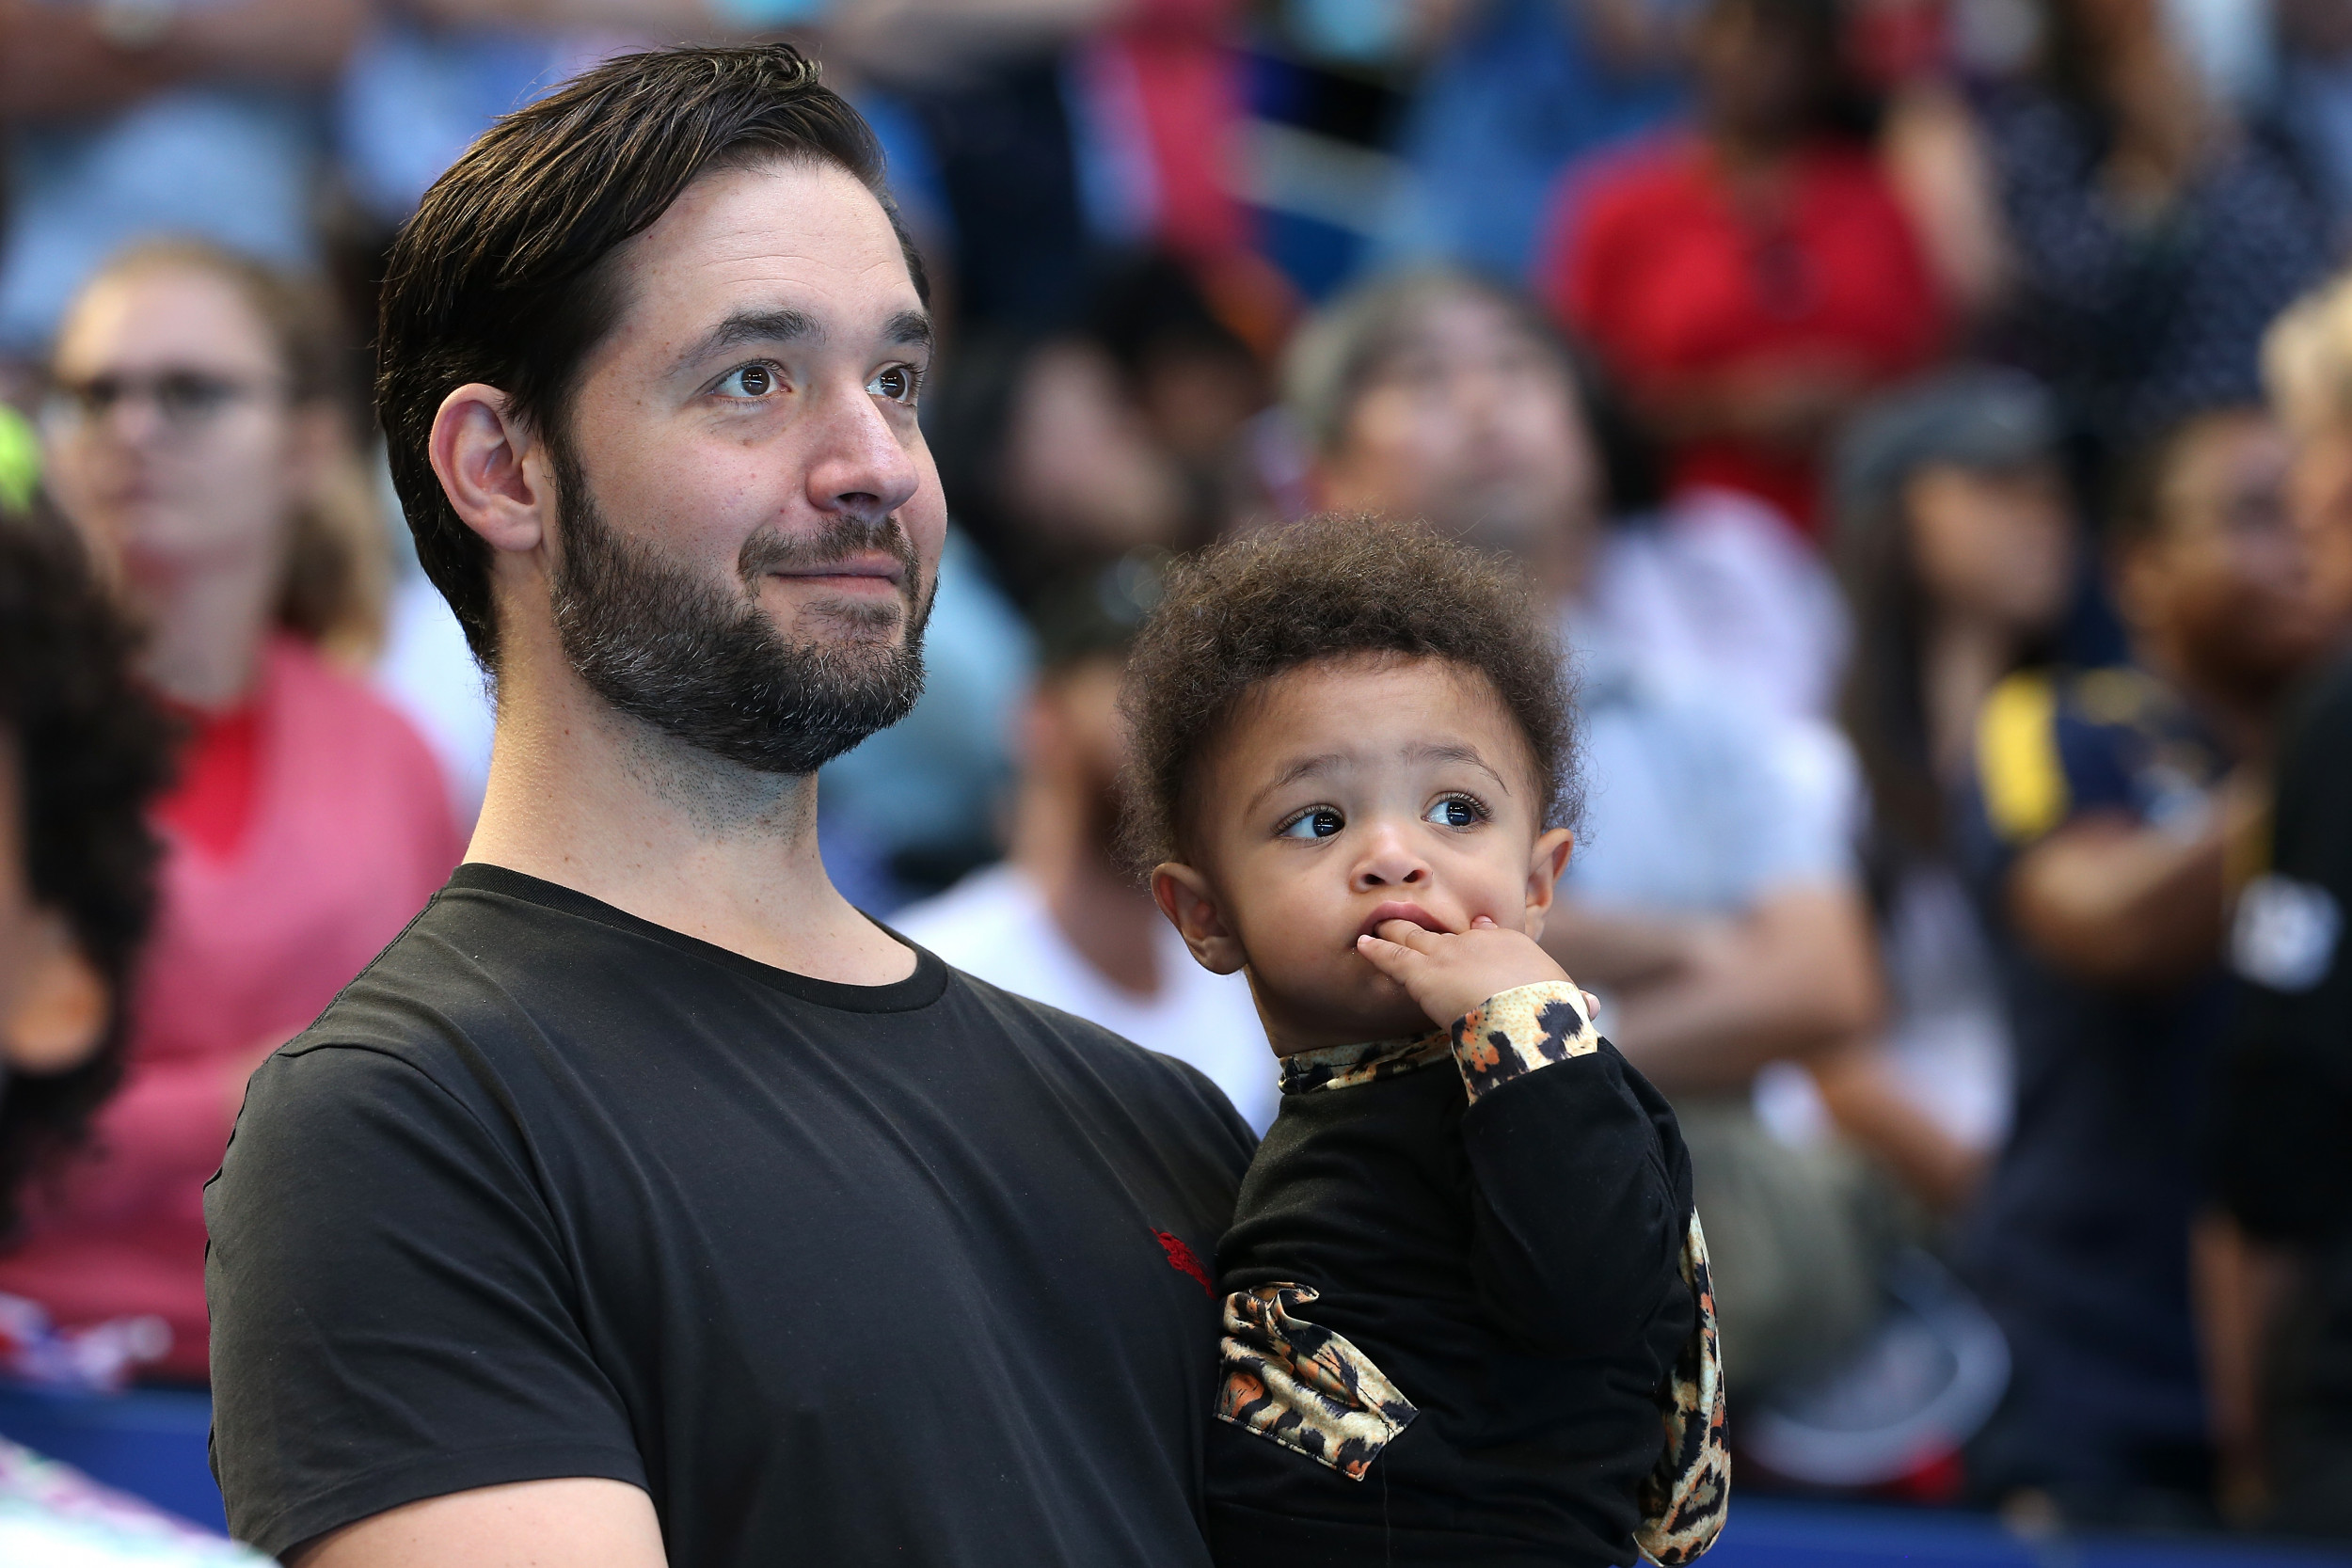 Here's why Reddit co-founder Alexis Ohanian stepped down from the board